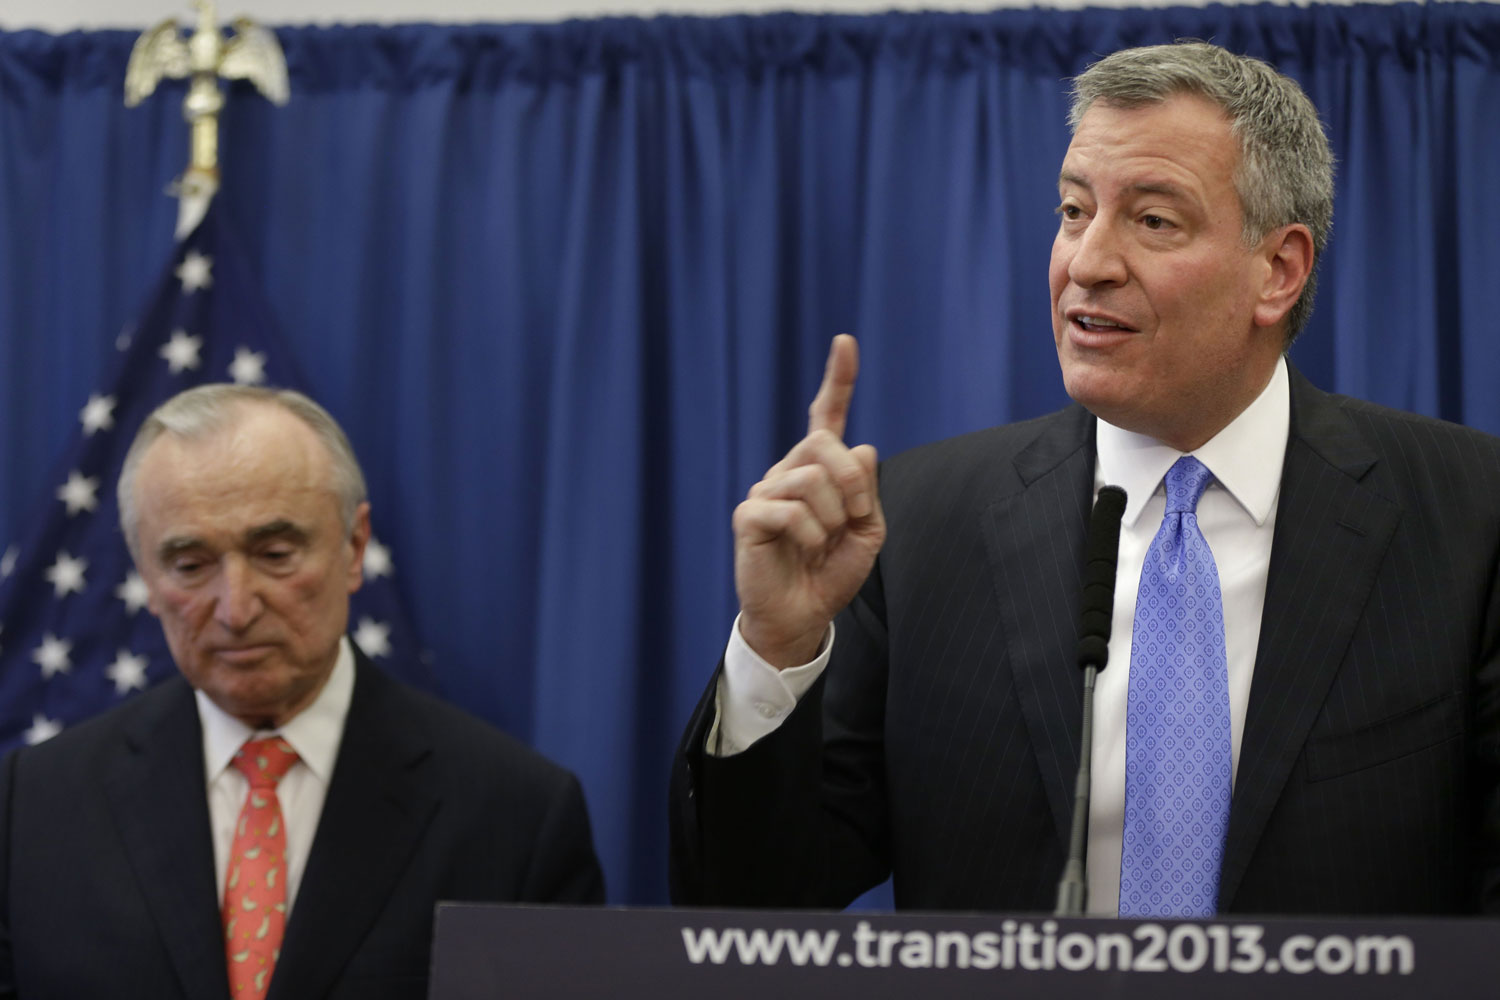 William-Bratton-left-listens-while-New-York-Mayor-elect-Bill-de-Blasio-talks-during-a-news-conference-in-New-York-Thursday.-AP-Photo